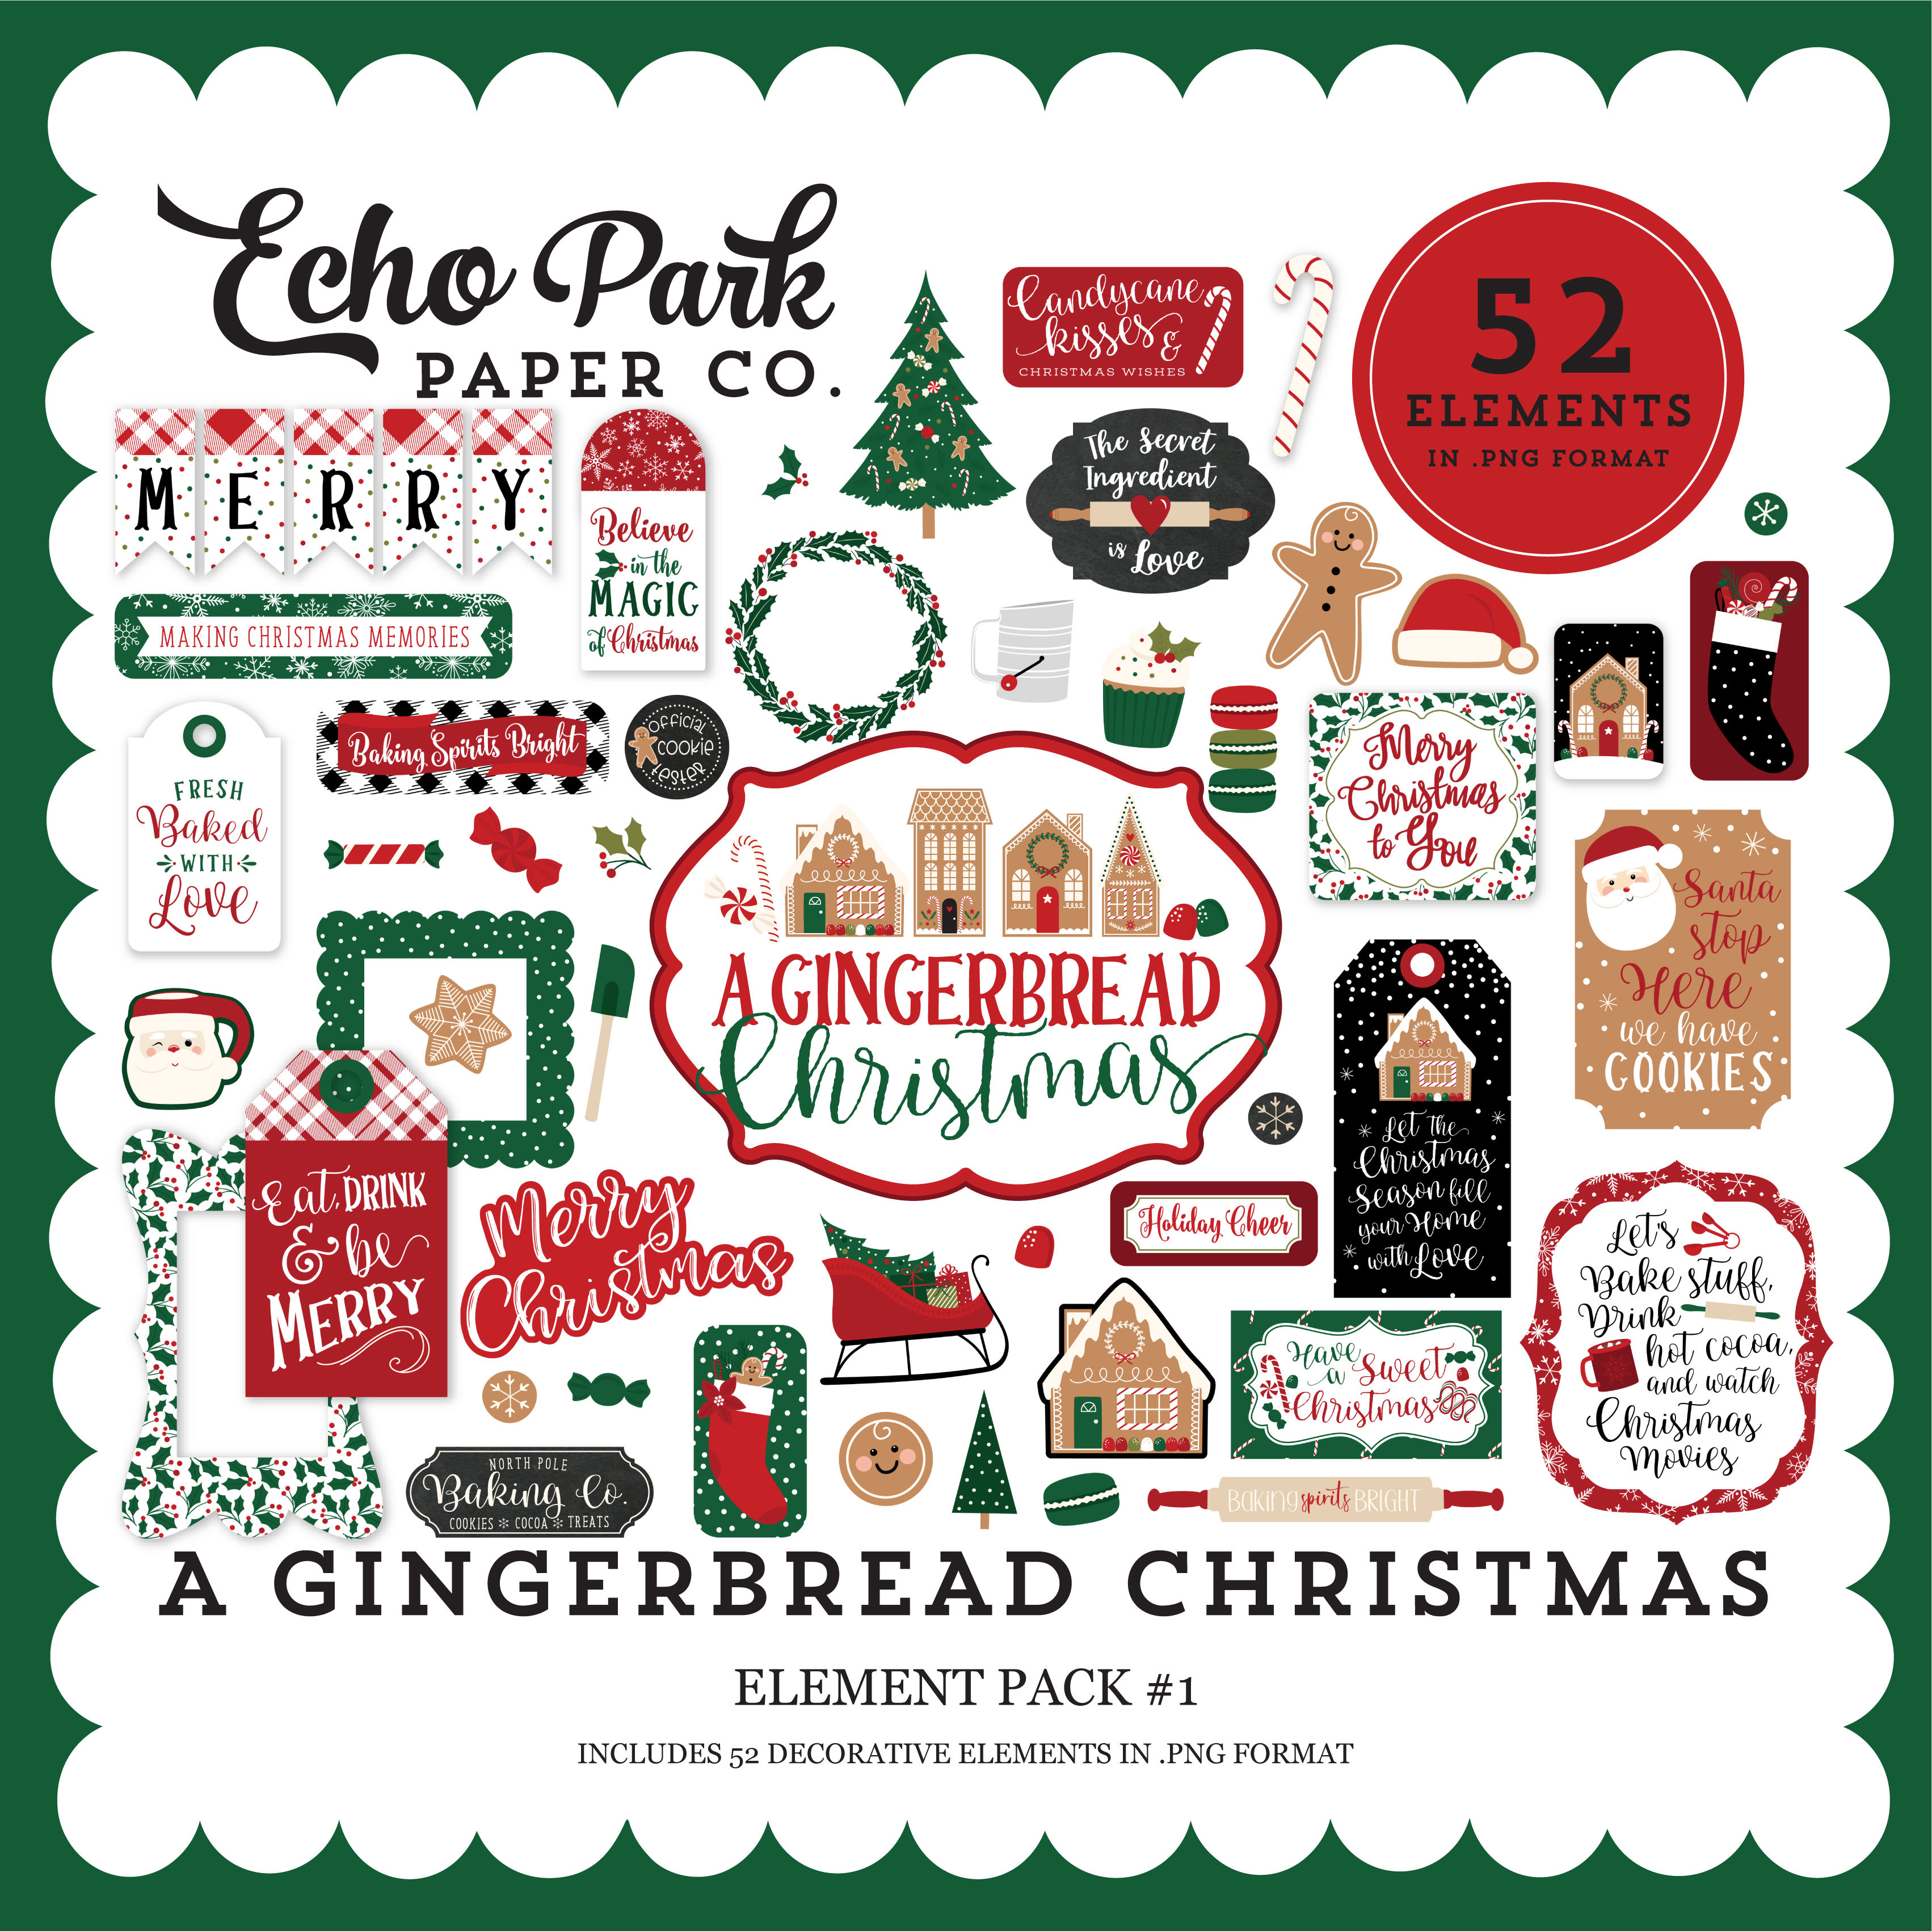 A Gingerbread Christmas Element Pack #1